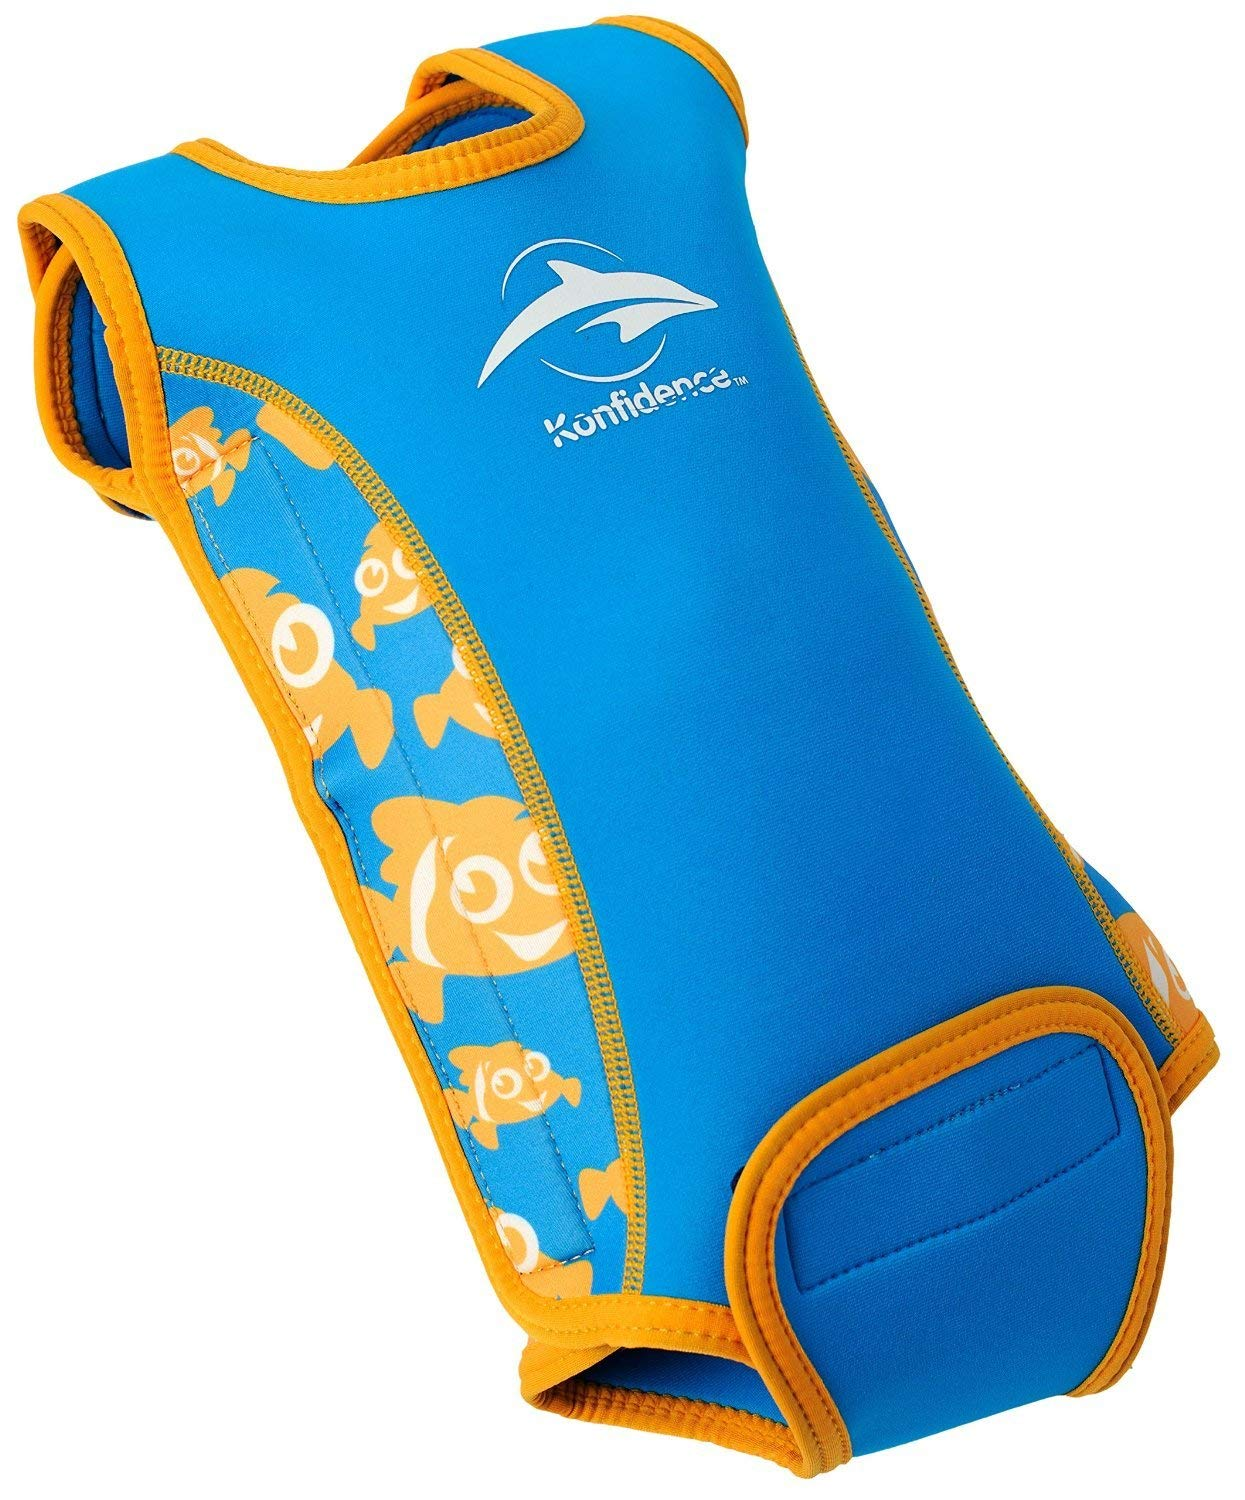 Babywarma Baby Wetsuit Buy Online In Cayman Islands Konfidence Products In Cayman Islands See Prices Reviews And Free Delivery Over Ci 60 Desertcart